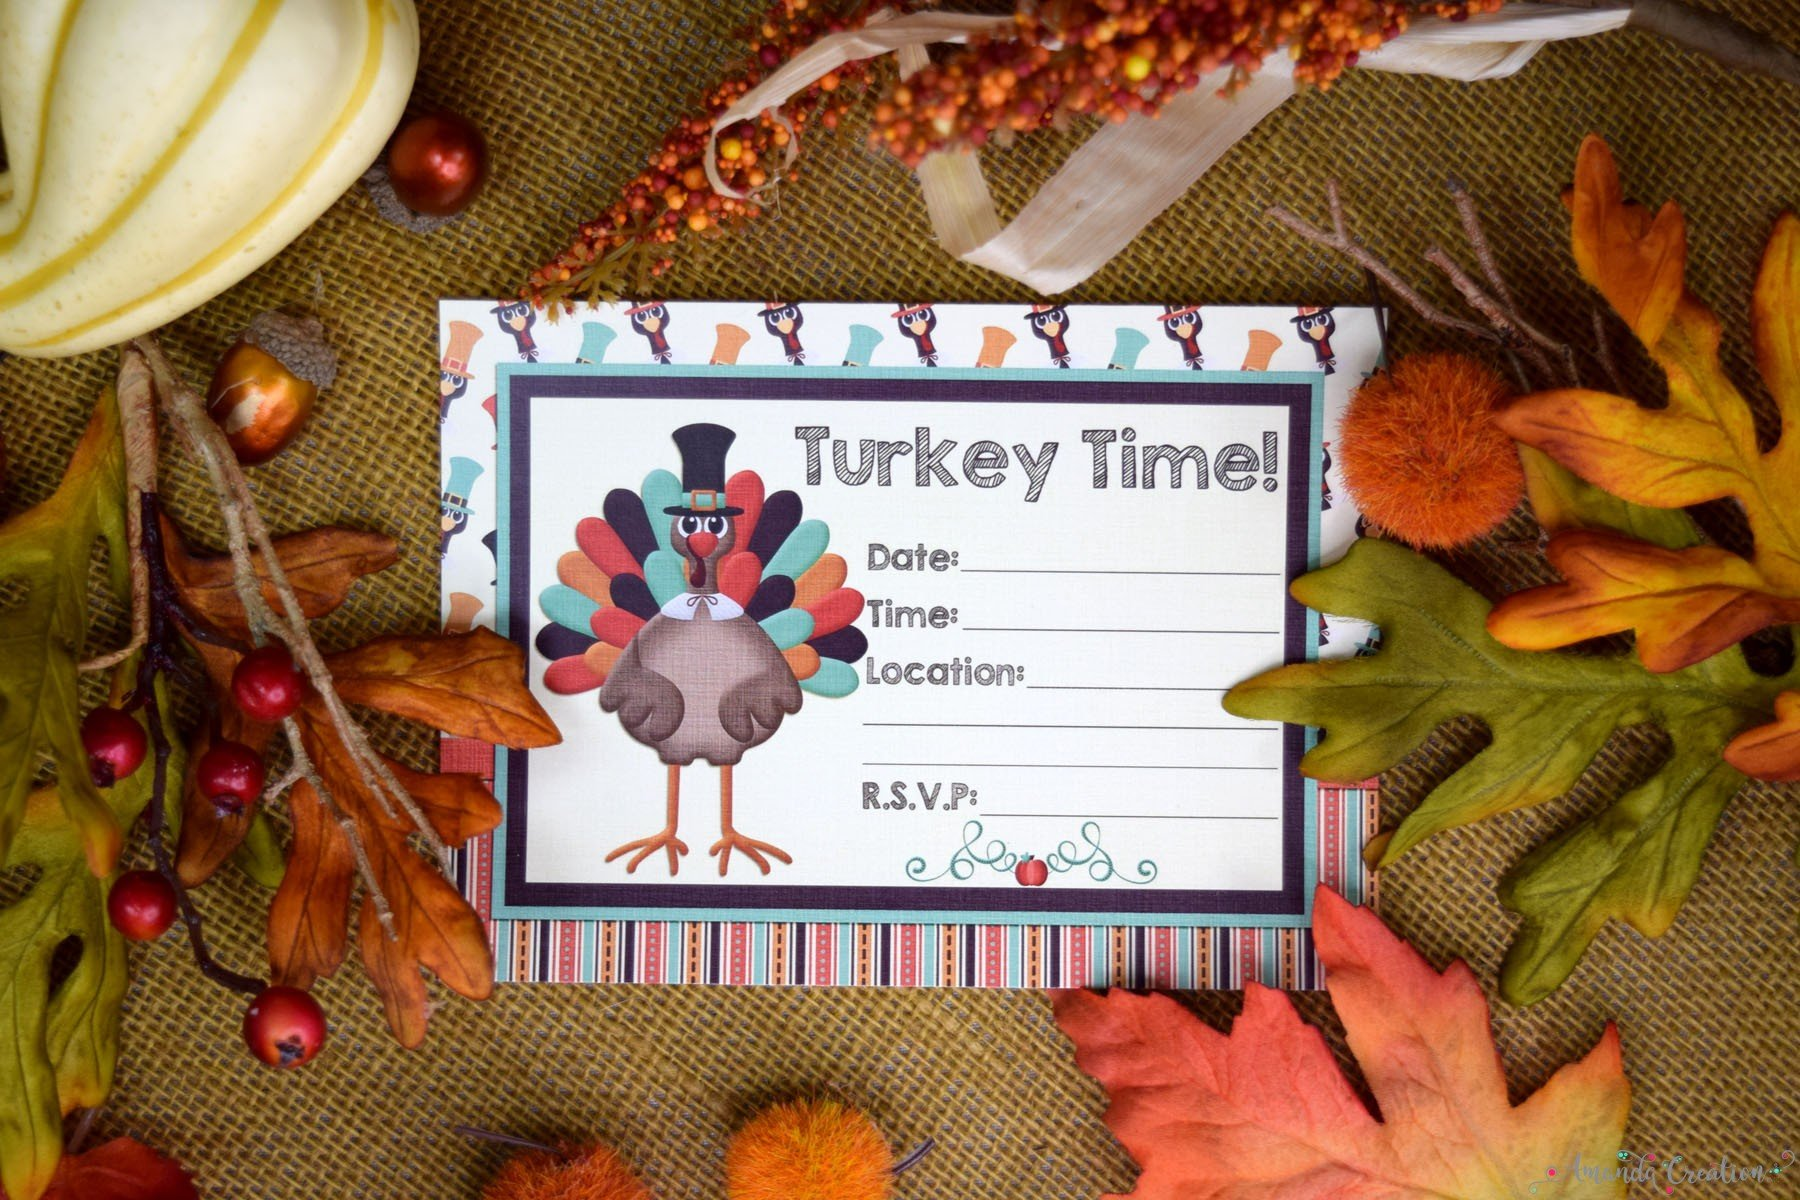 turkey time invite